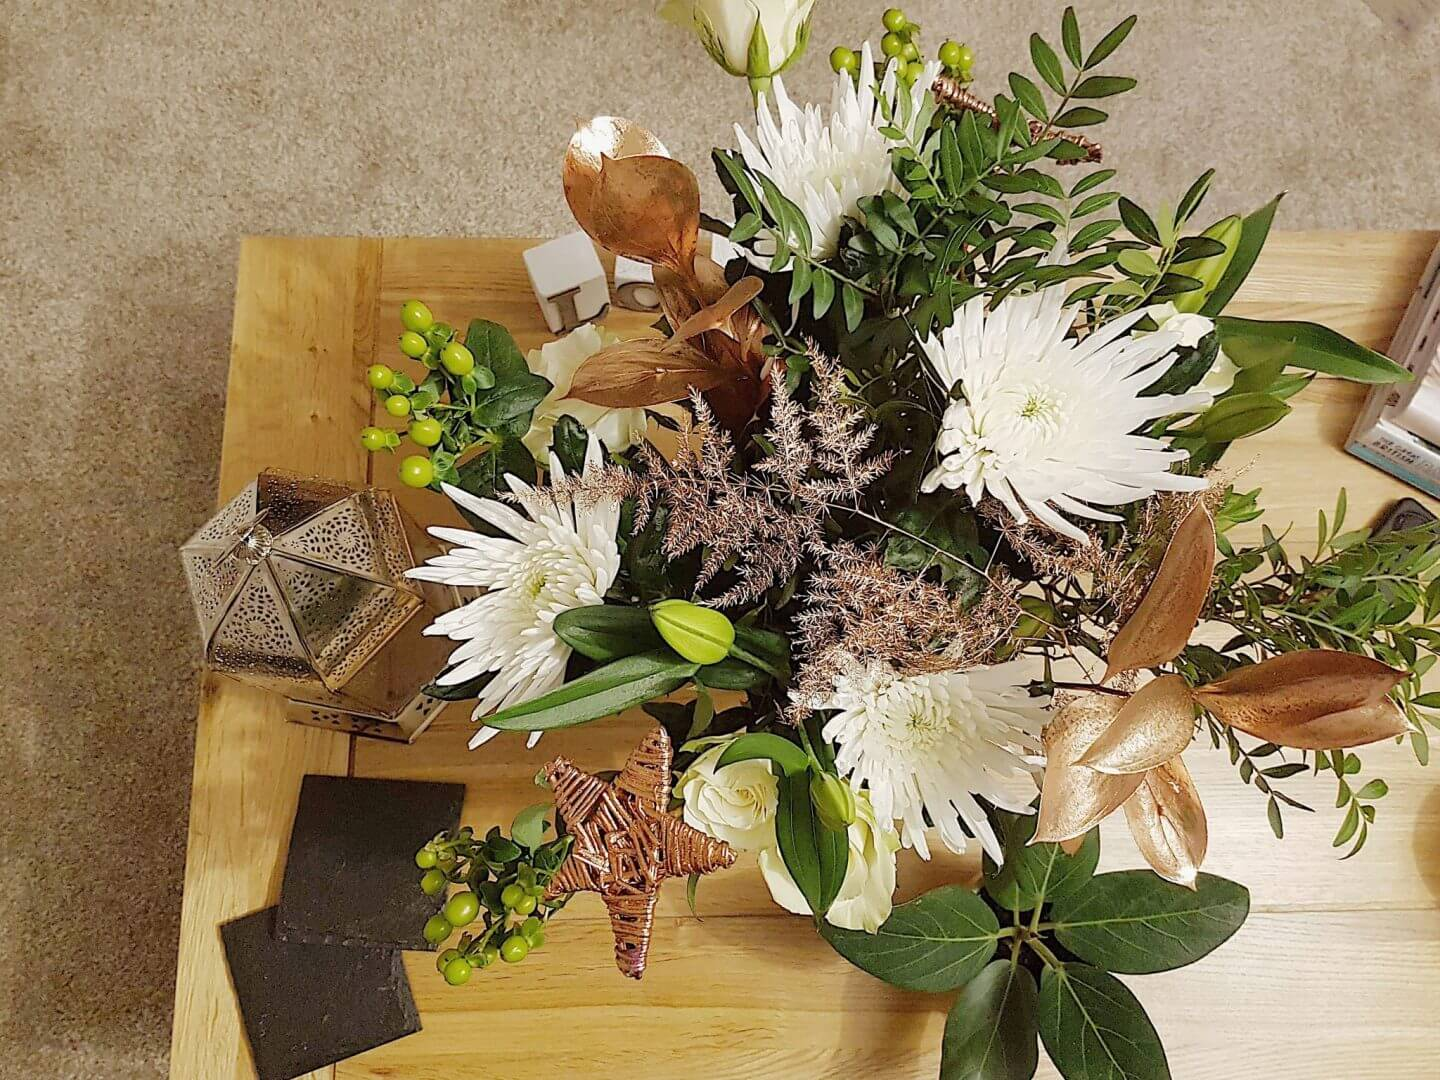 Product Review: Christmas Flowers by Prestige